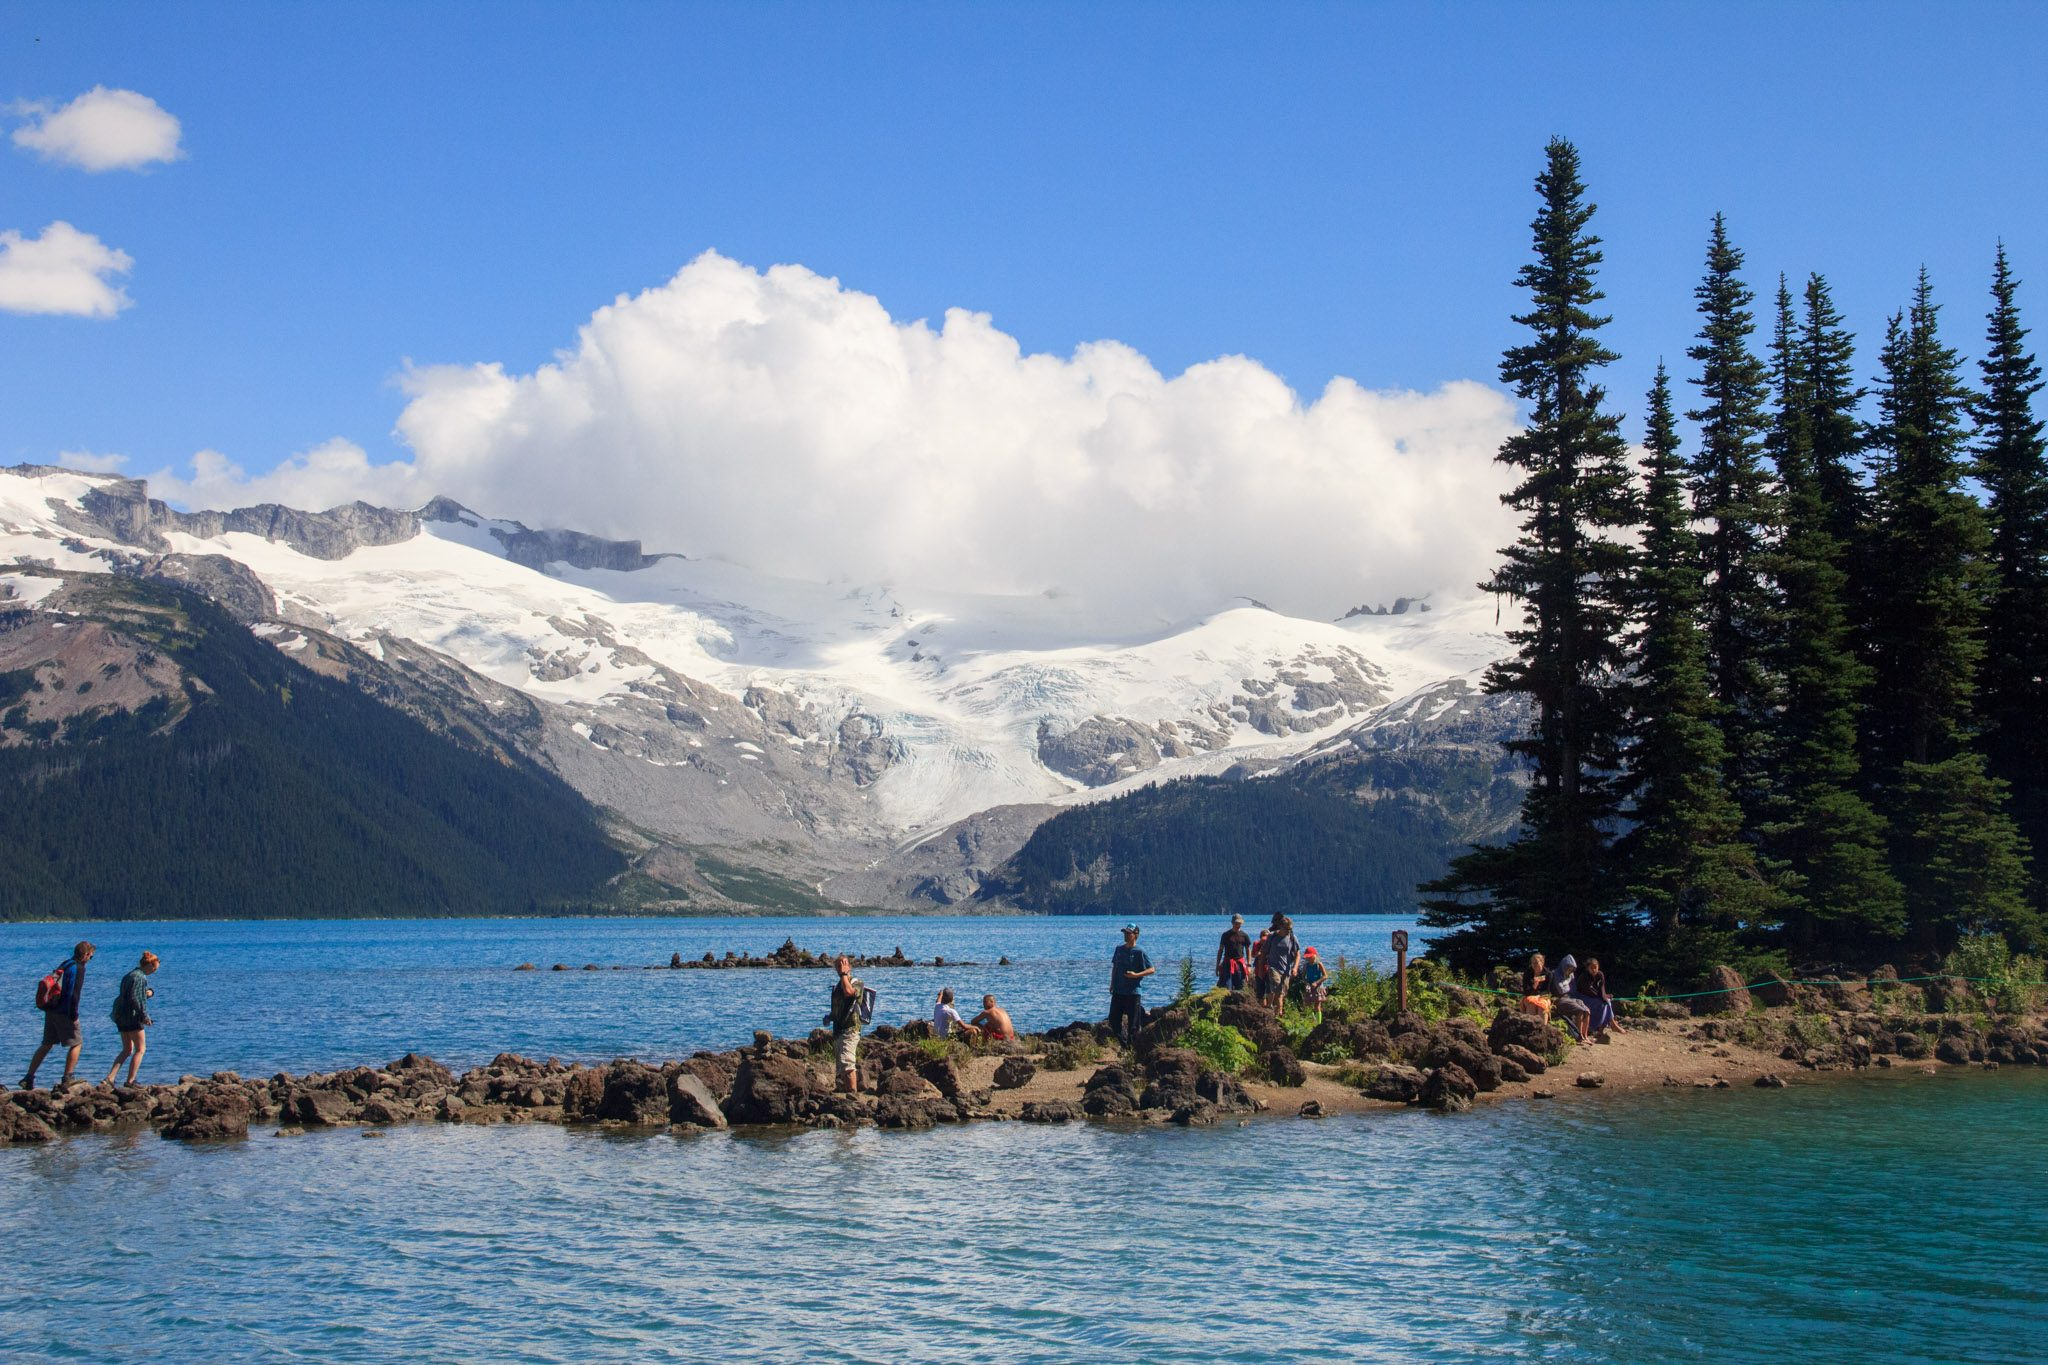 Wandering along Battleship Island at Garibaldi Lake (Daily Hive/Conrad Olson)